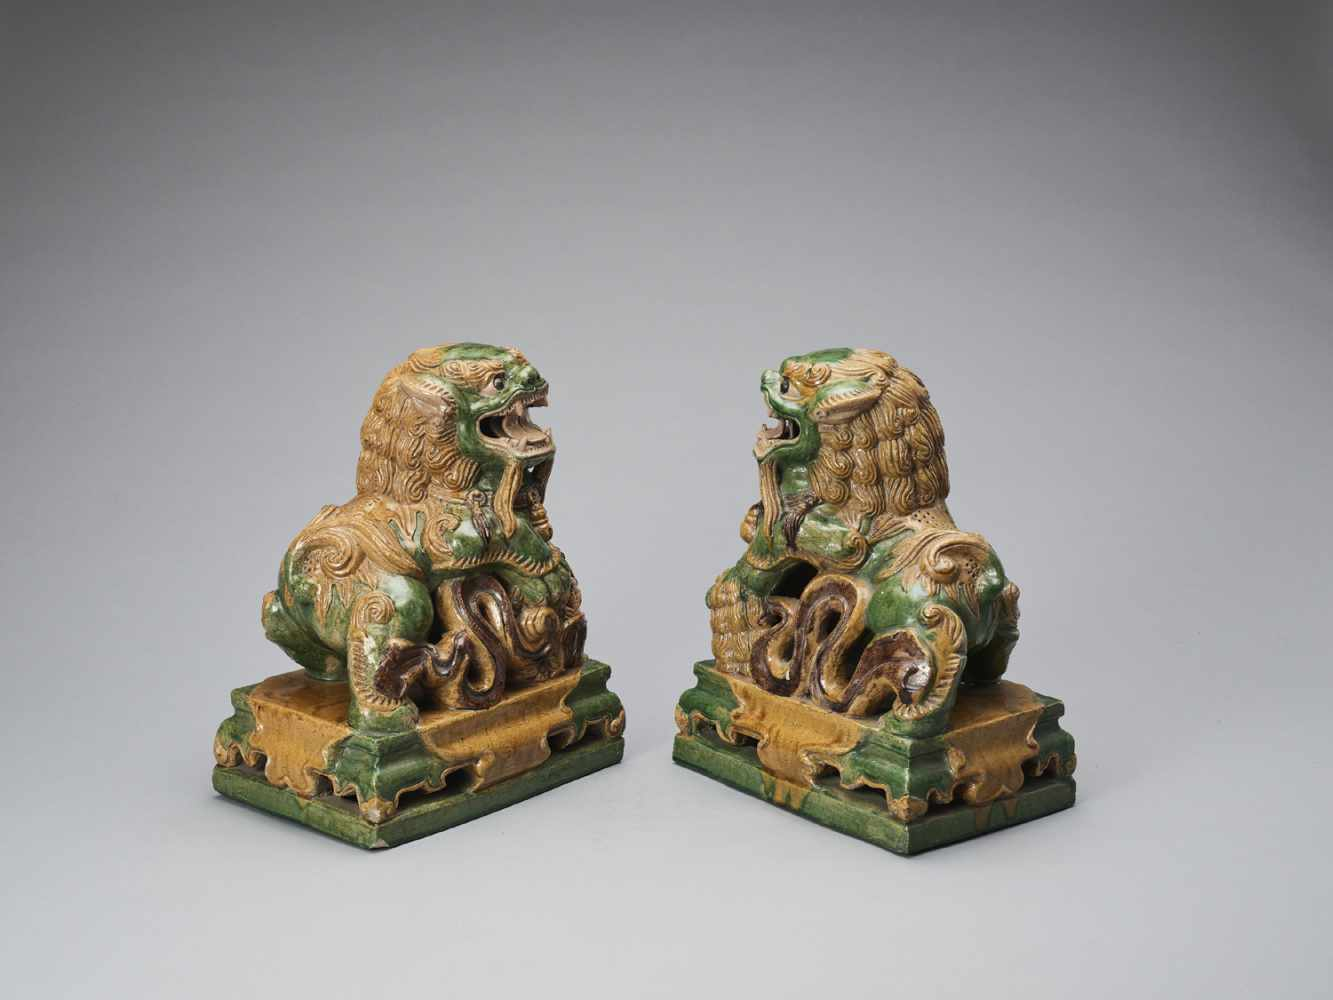 A PAIR OF RETICULATED SANCAI GLAZED POTTERY BUDDHIST LIONS, LATE MING TO EARLIER QING - Bild 4 aus 8